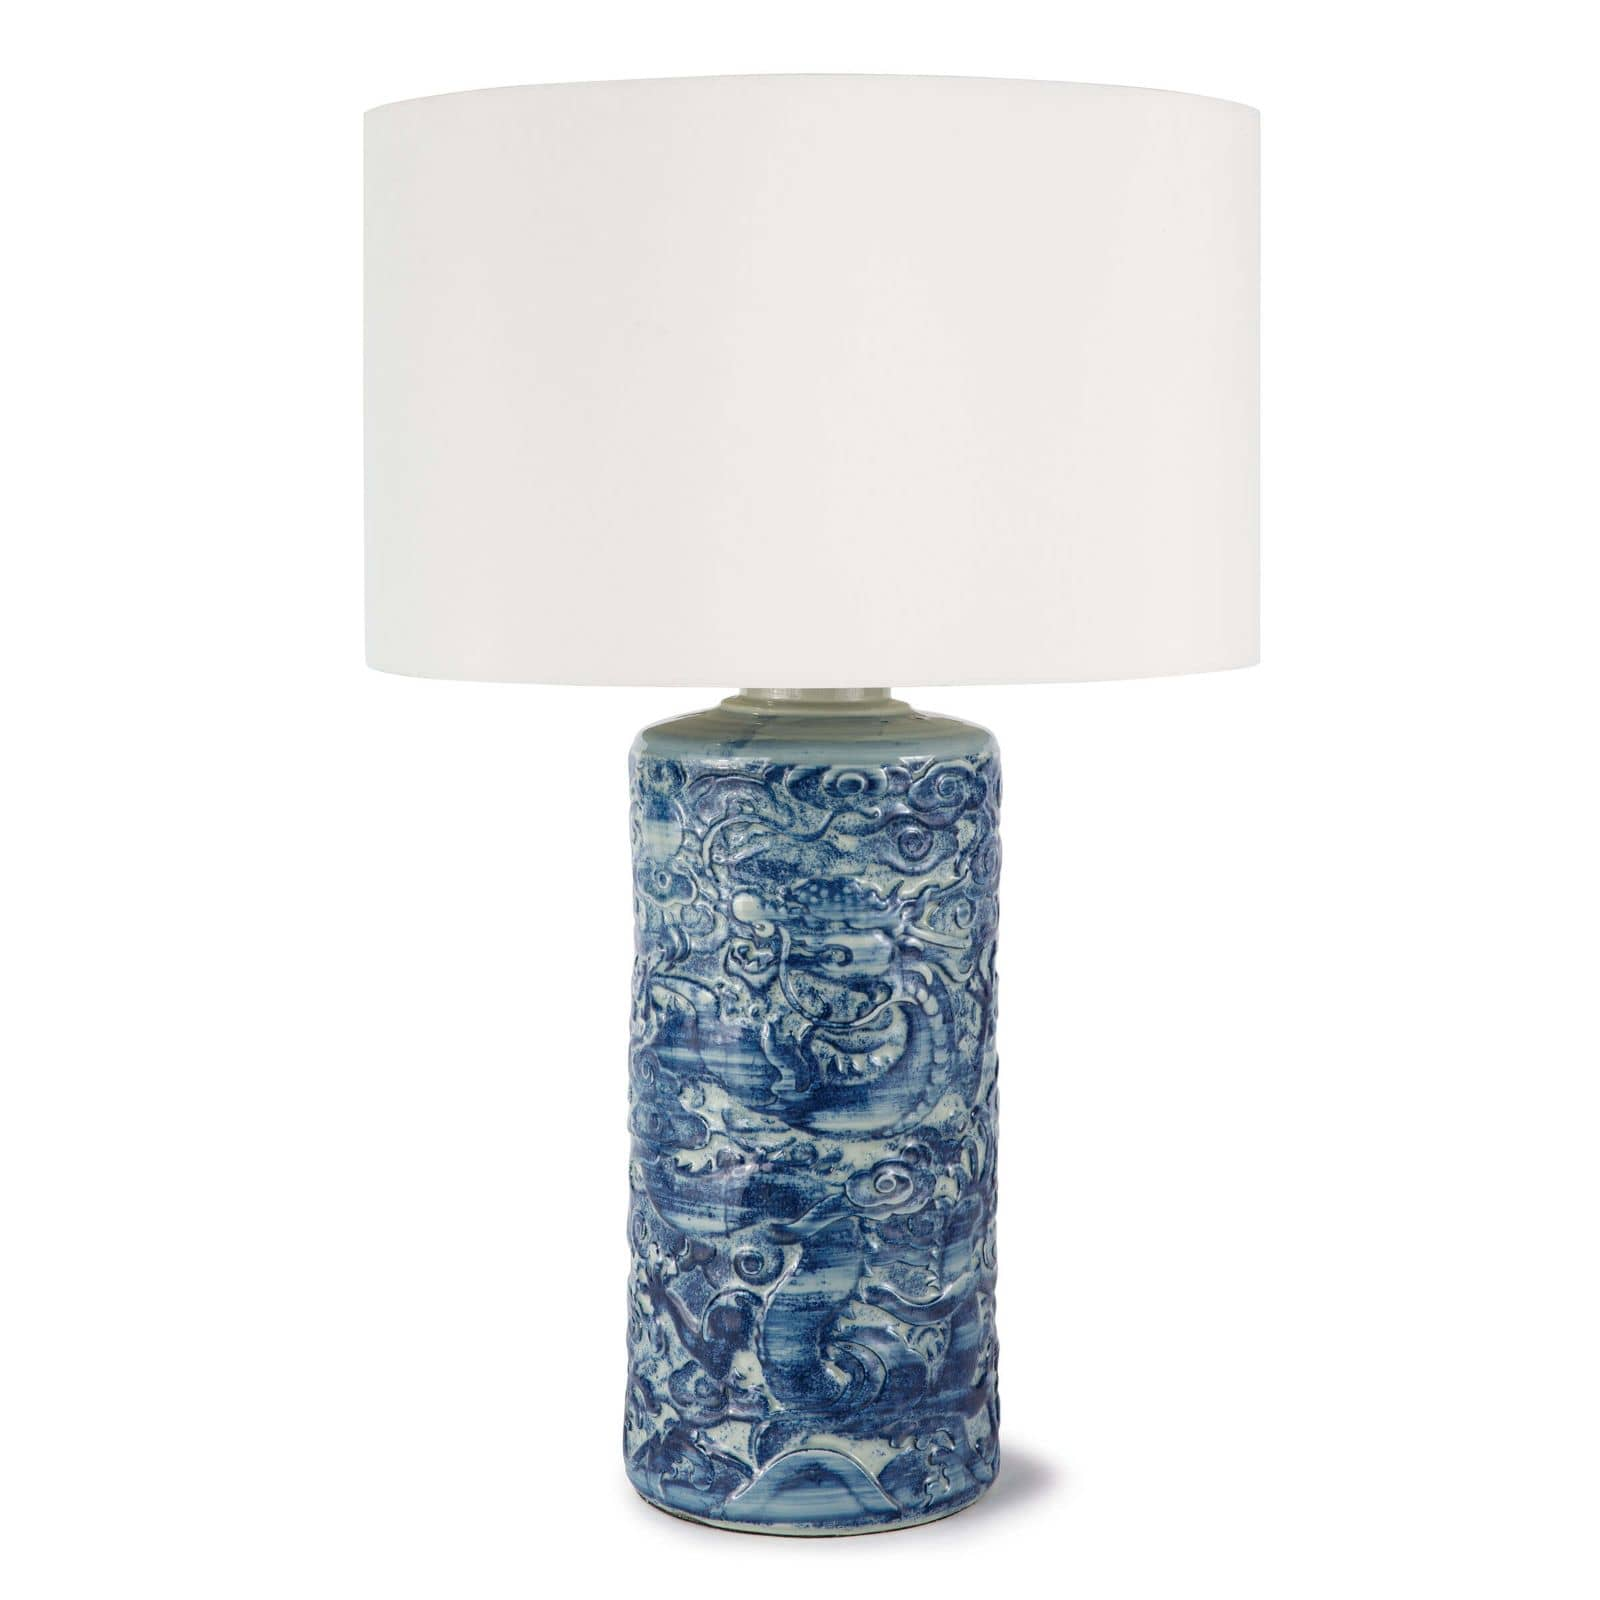 Zodiac Ceramic Table Lamp Blue | Regina Andrew